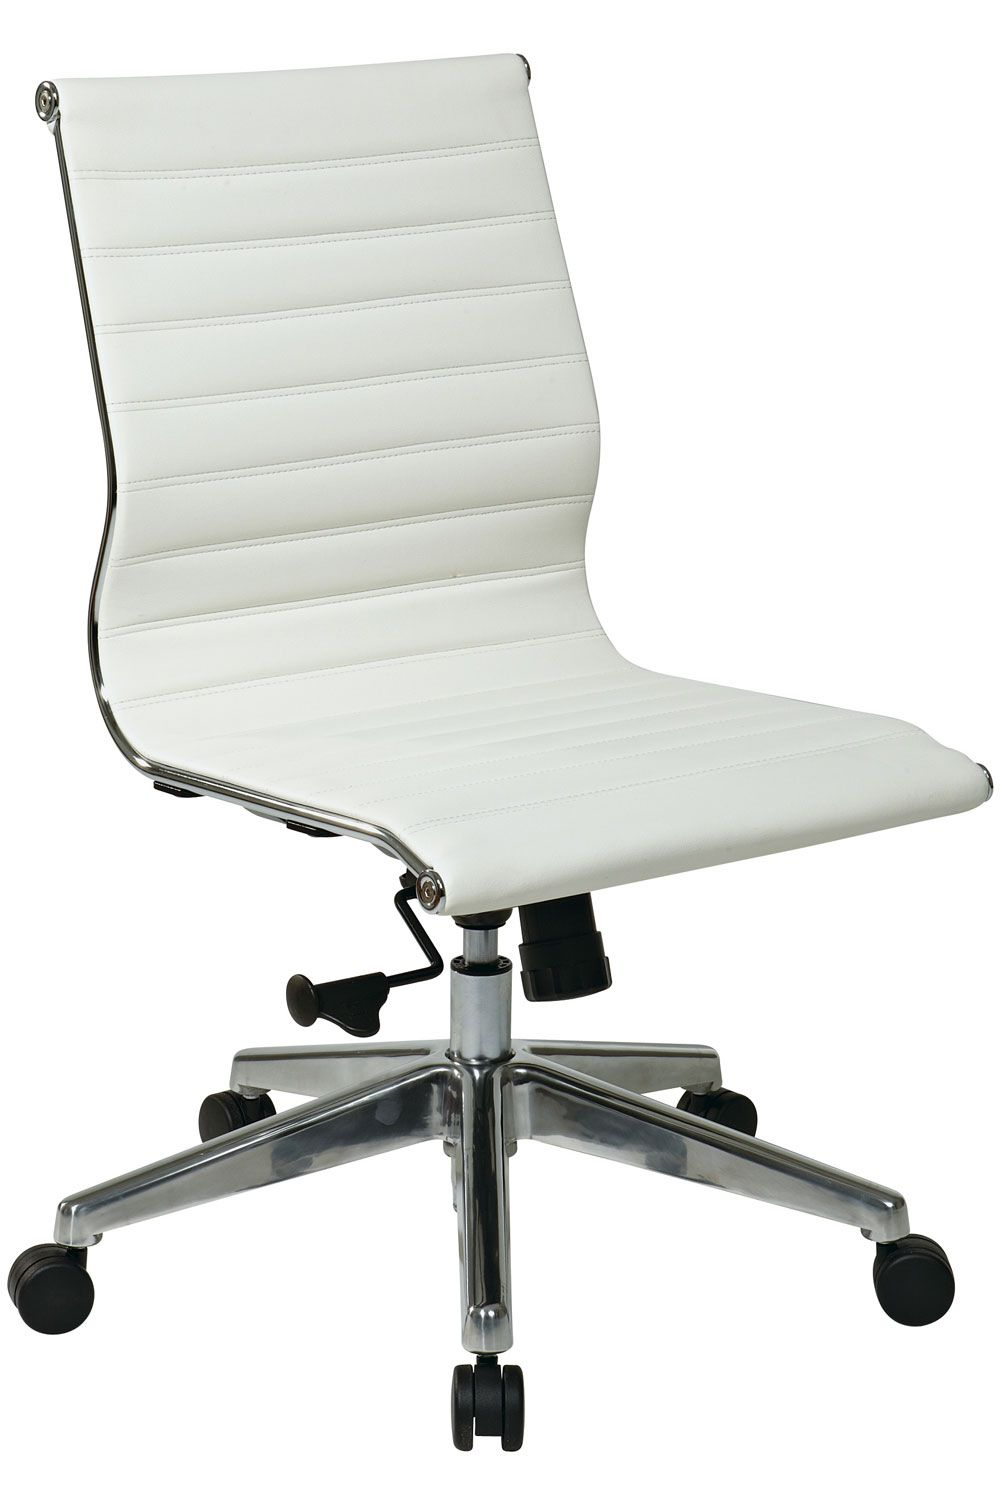 Awesome Amazing Office Chairs Without Arms 88 For Your Home Design Ideas With